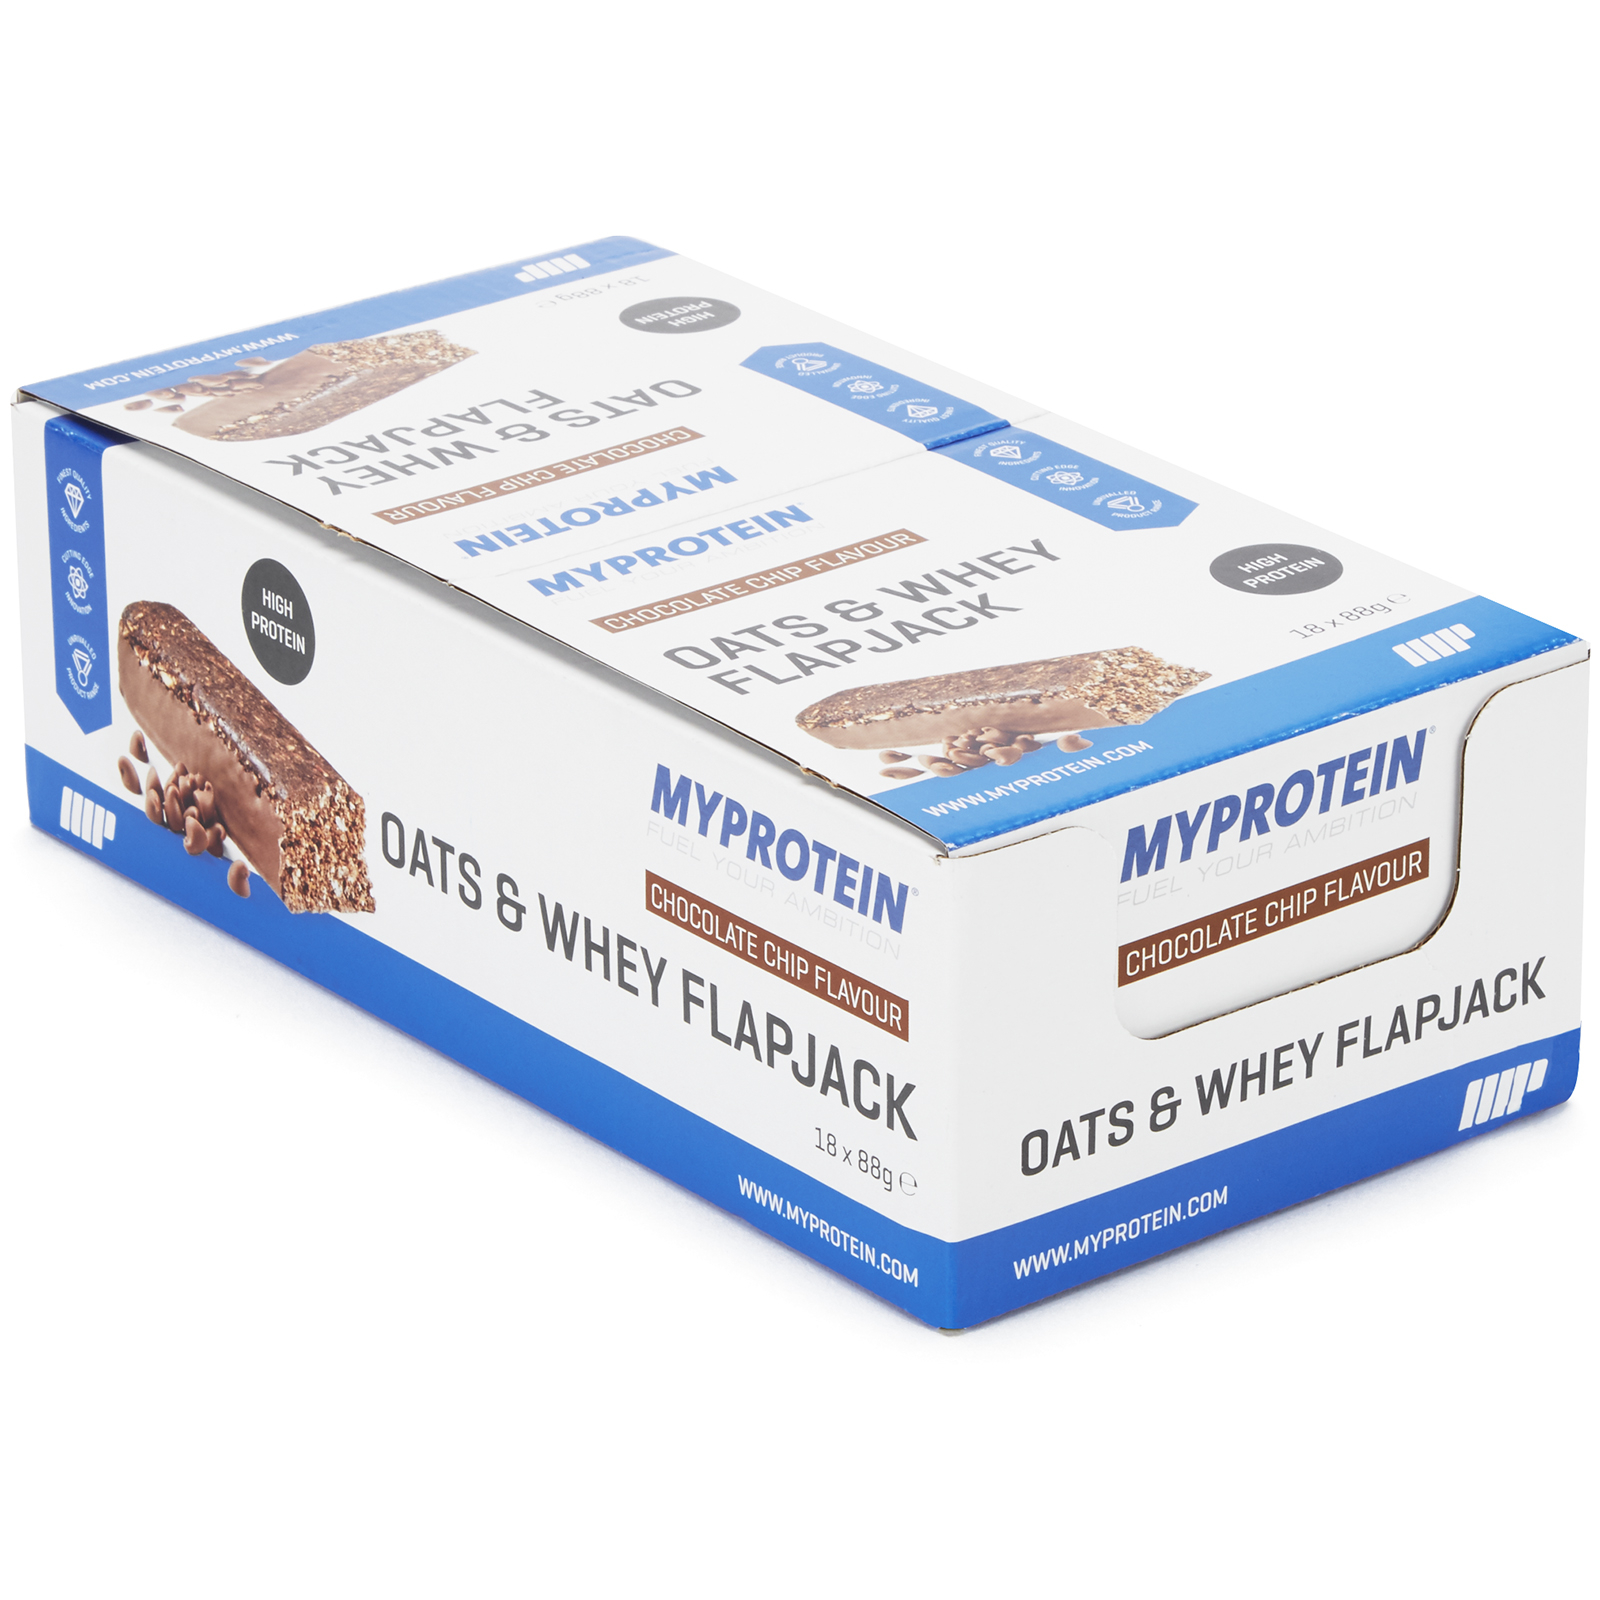 MyBar Oats & Whey - Chocolate Chip, 18 Bars